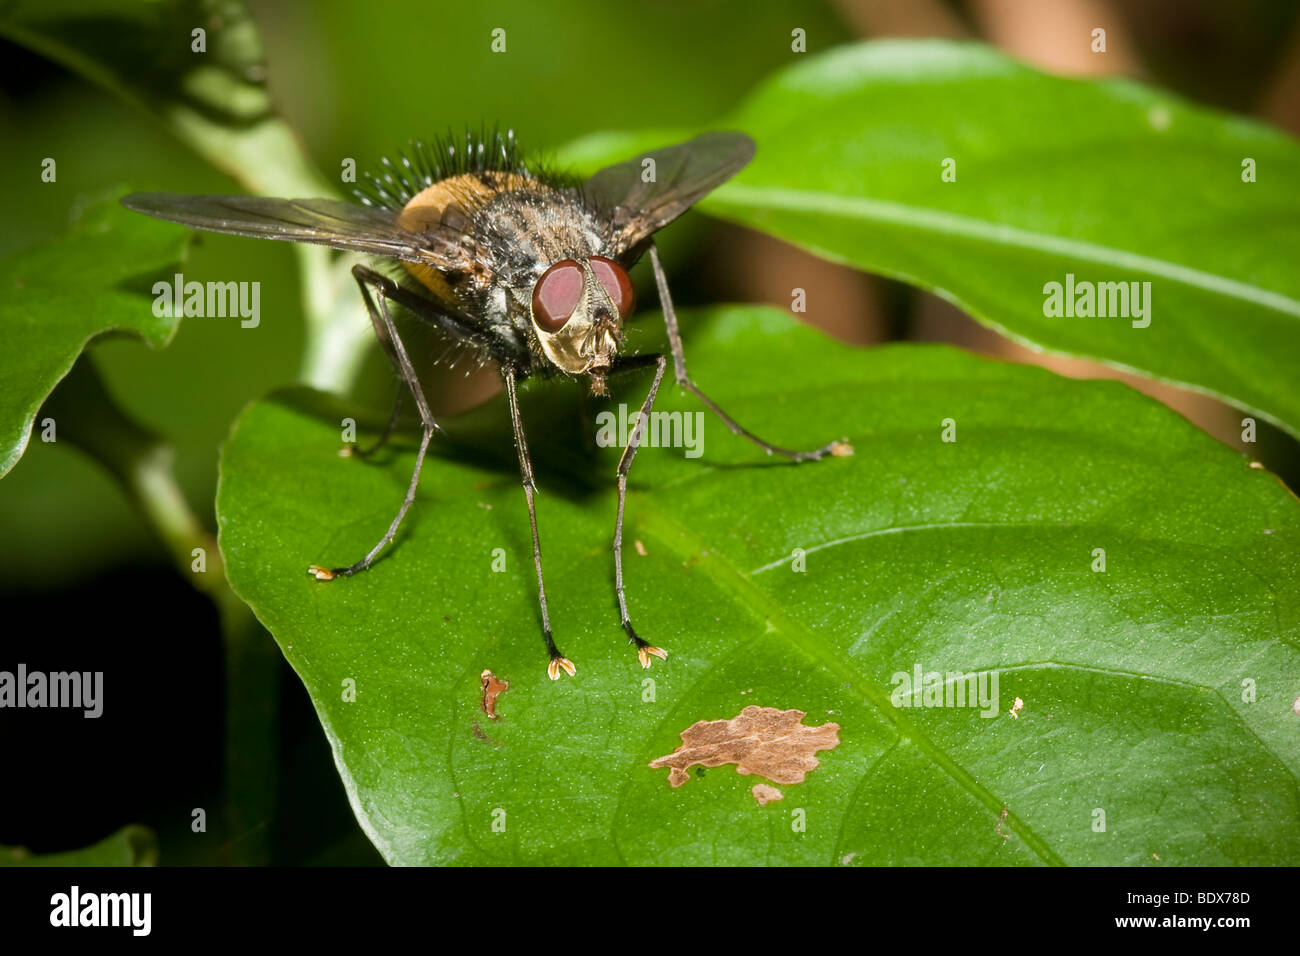 Tachinid fly, order Diptera, family Tachinidae. Photographed in Costa Rica. Stock Photo